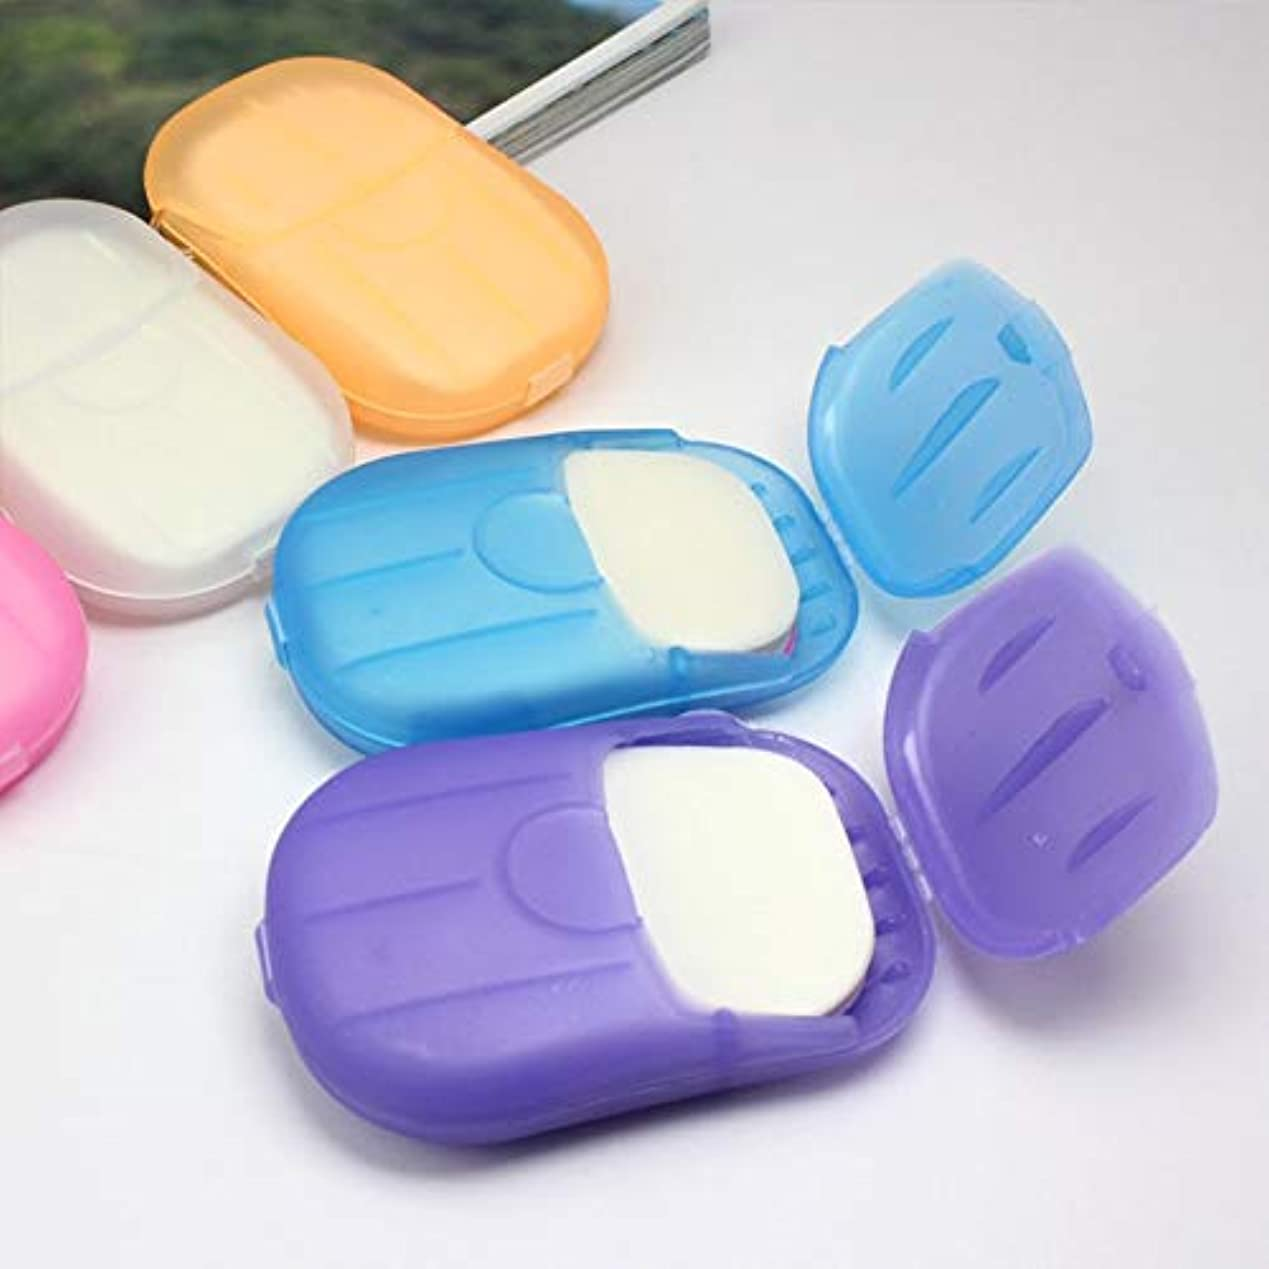 弾性真面目なラベンダー20 Pcs Paper Soap Outdoor Travel Bath Soap Tablets Portable Hand-washing